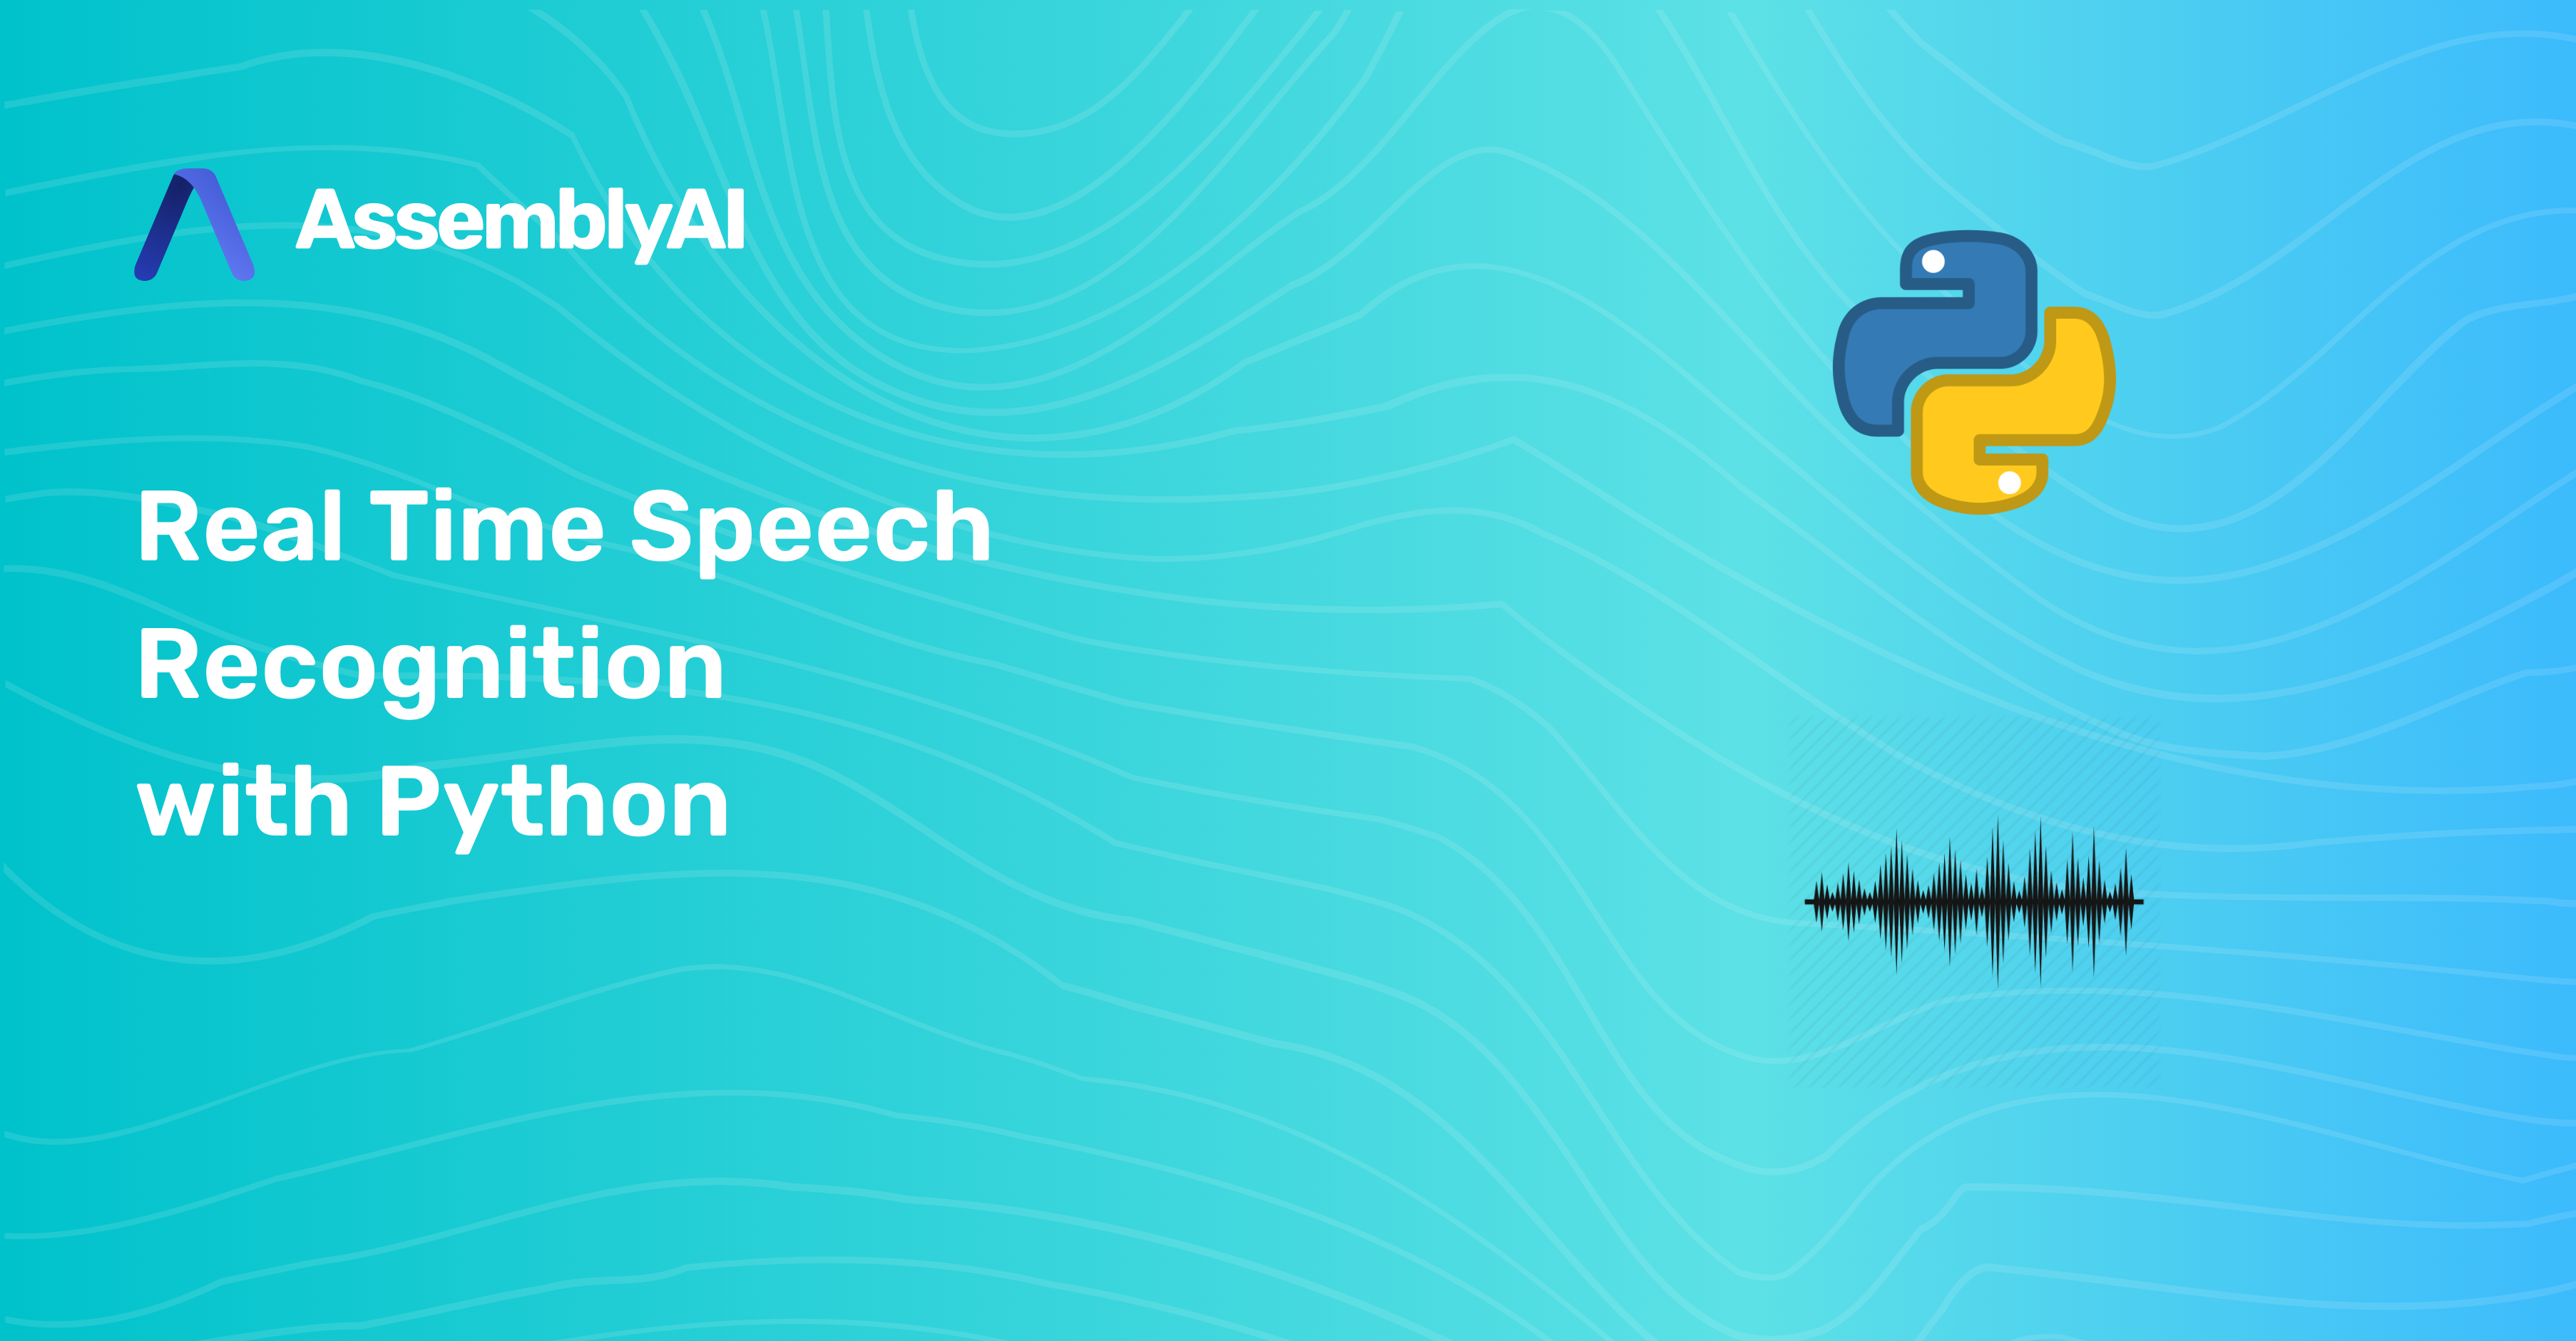 Real Time Speech Recognition with Python